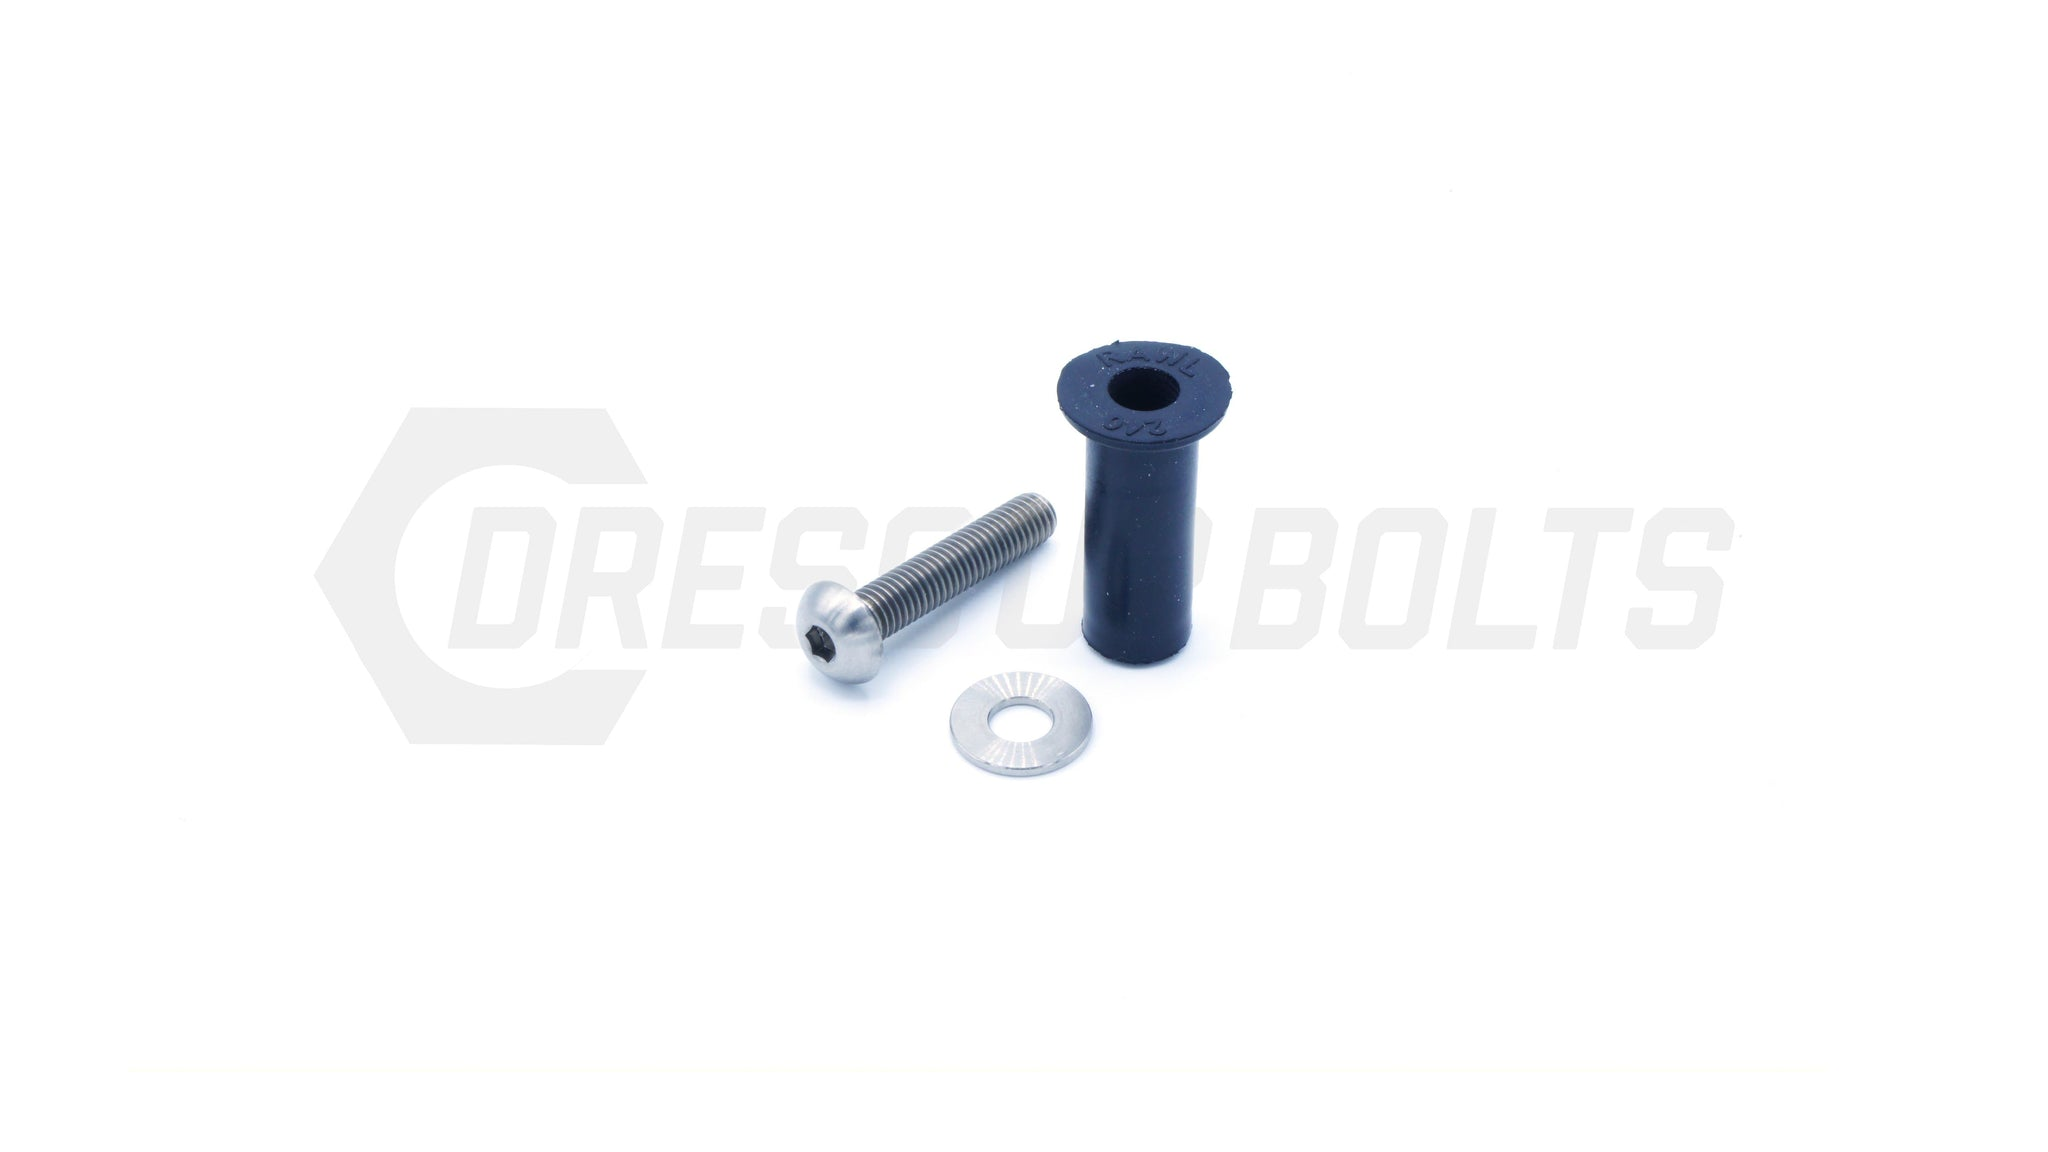 Dress Up Bolts Titanium Widebody Hardware - Combo 1 - DressUpBolts.com